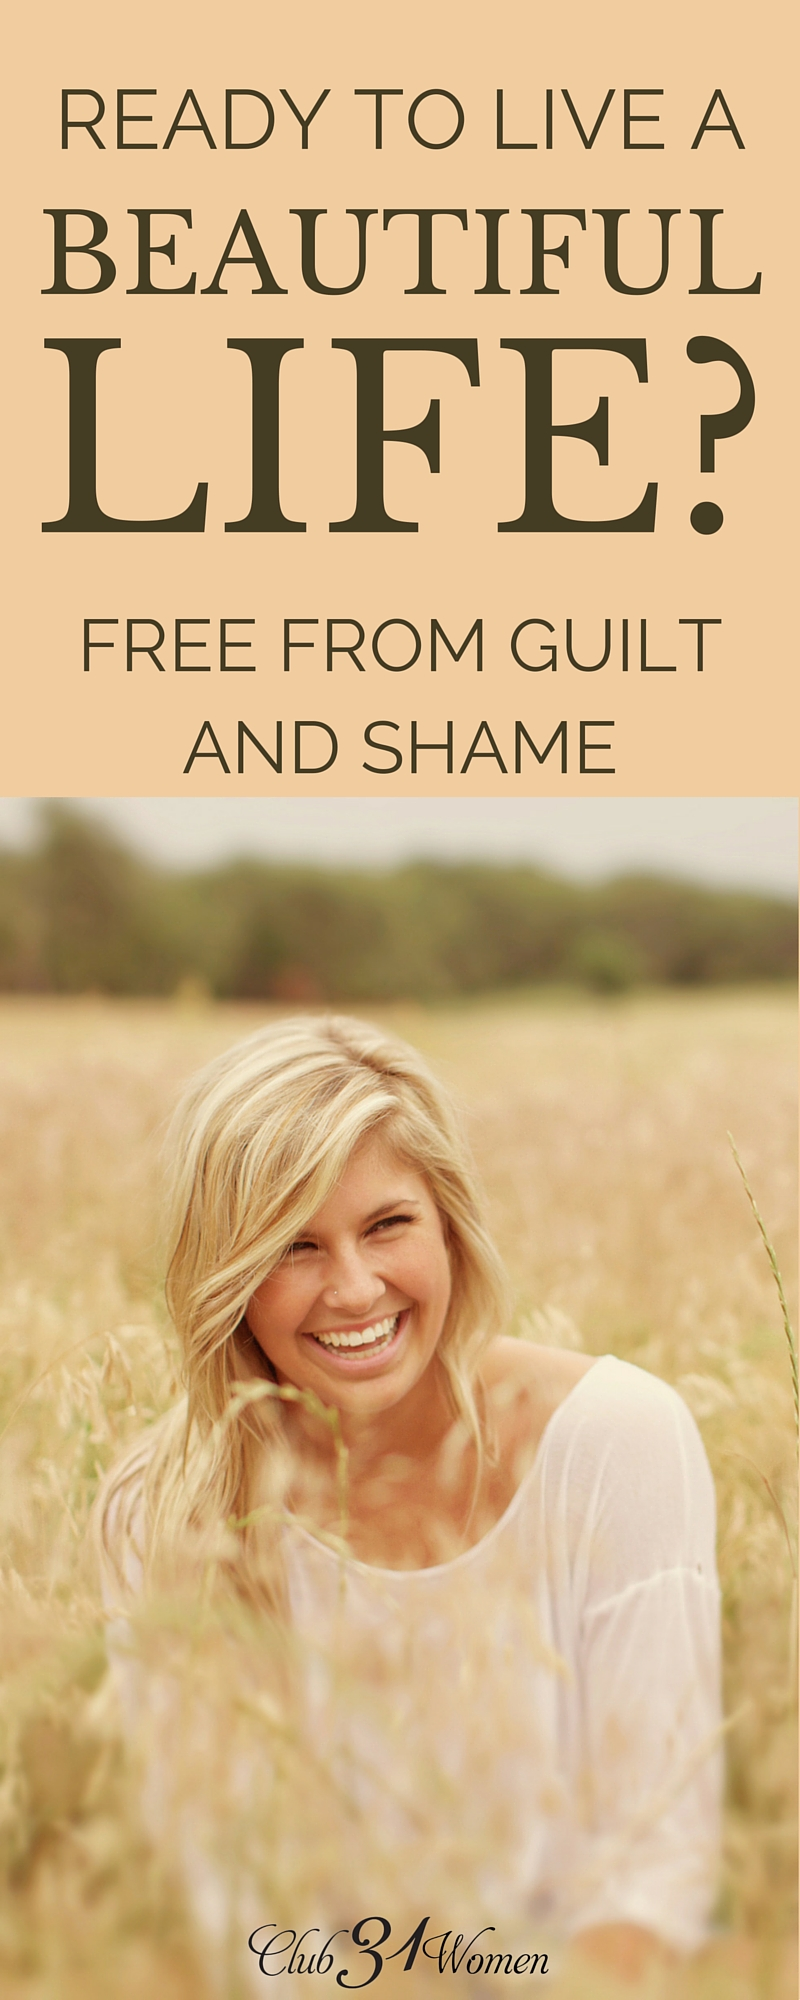 What if you could believe that God is doing a great work to make you perfect? Wouldn't that hope change everything? Here's how you can start living a beautiful life free of guilt and shame.... ~ Club31Women via @Club31Women